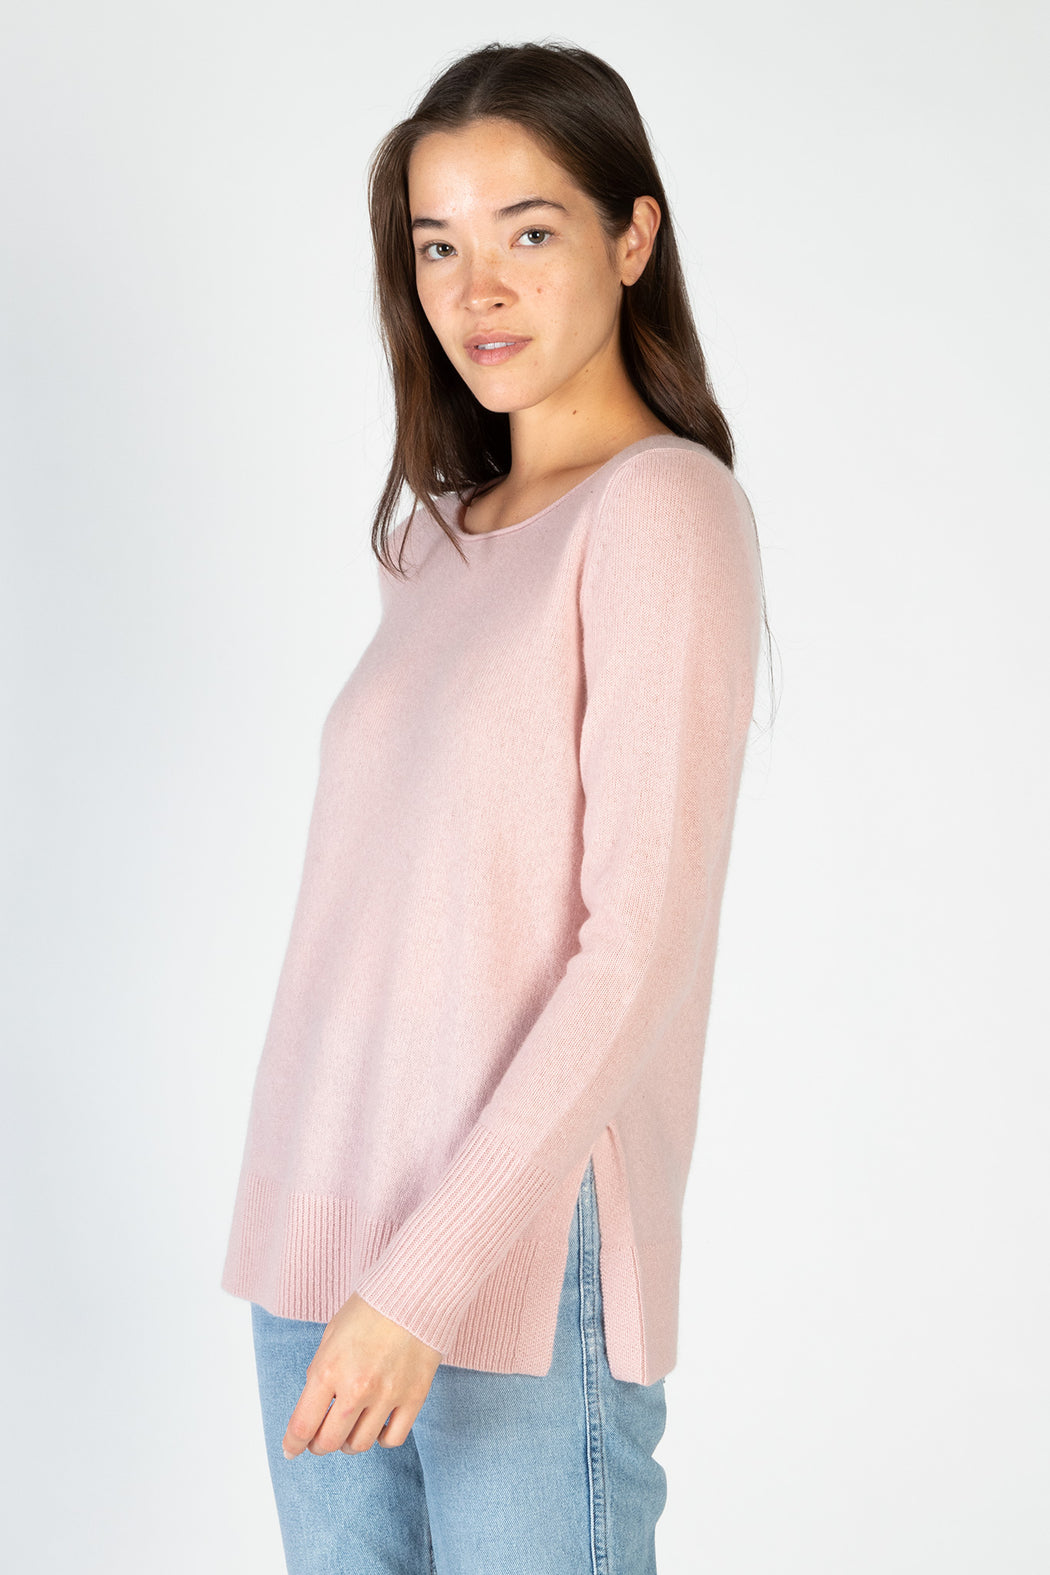 White-Warren-Cashmere-Side-Split-Open-Crewneck-Ballet-Pink